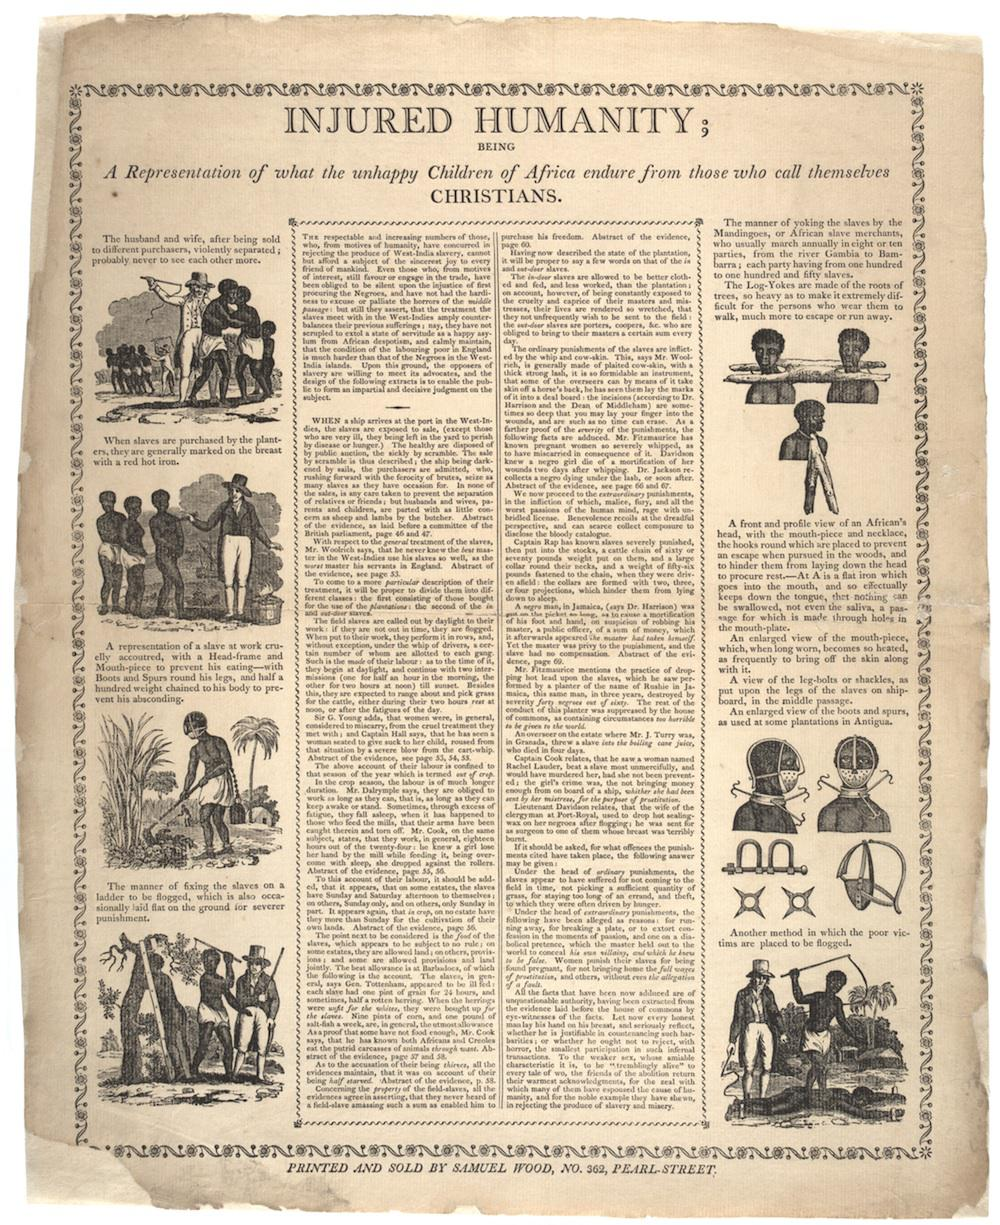 History of abolitionism and Quakers: Samuel Wood anti-slavery broadside published in New York.